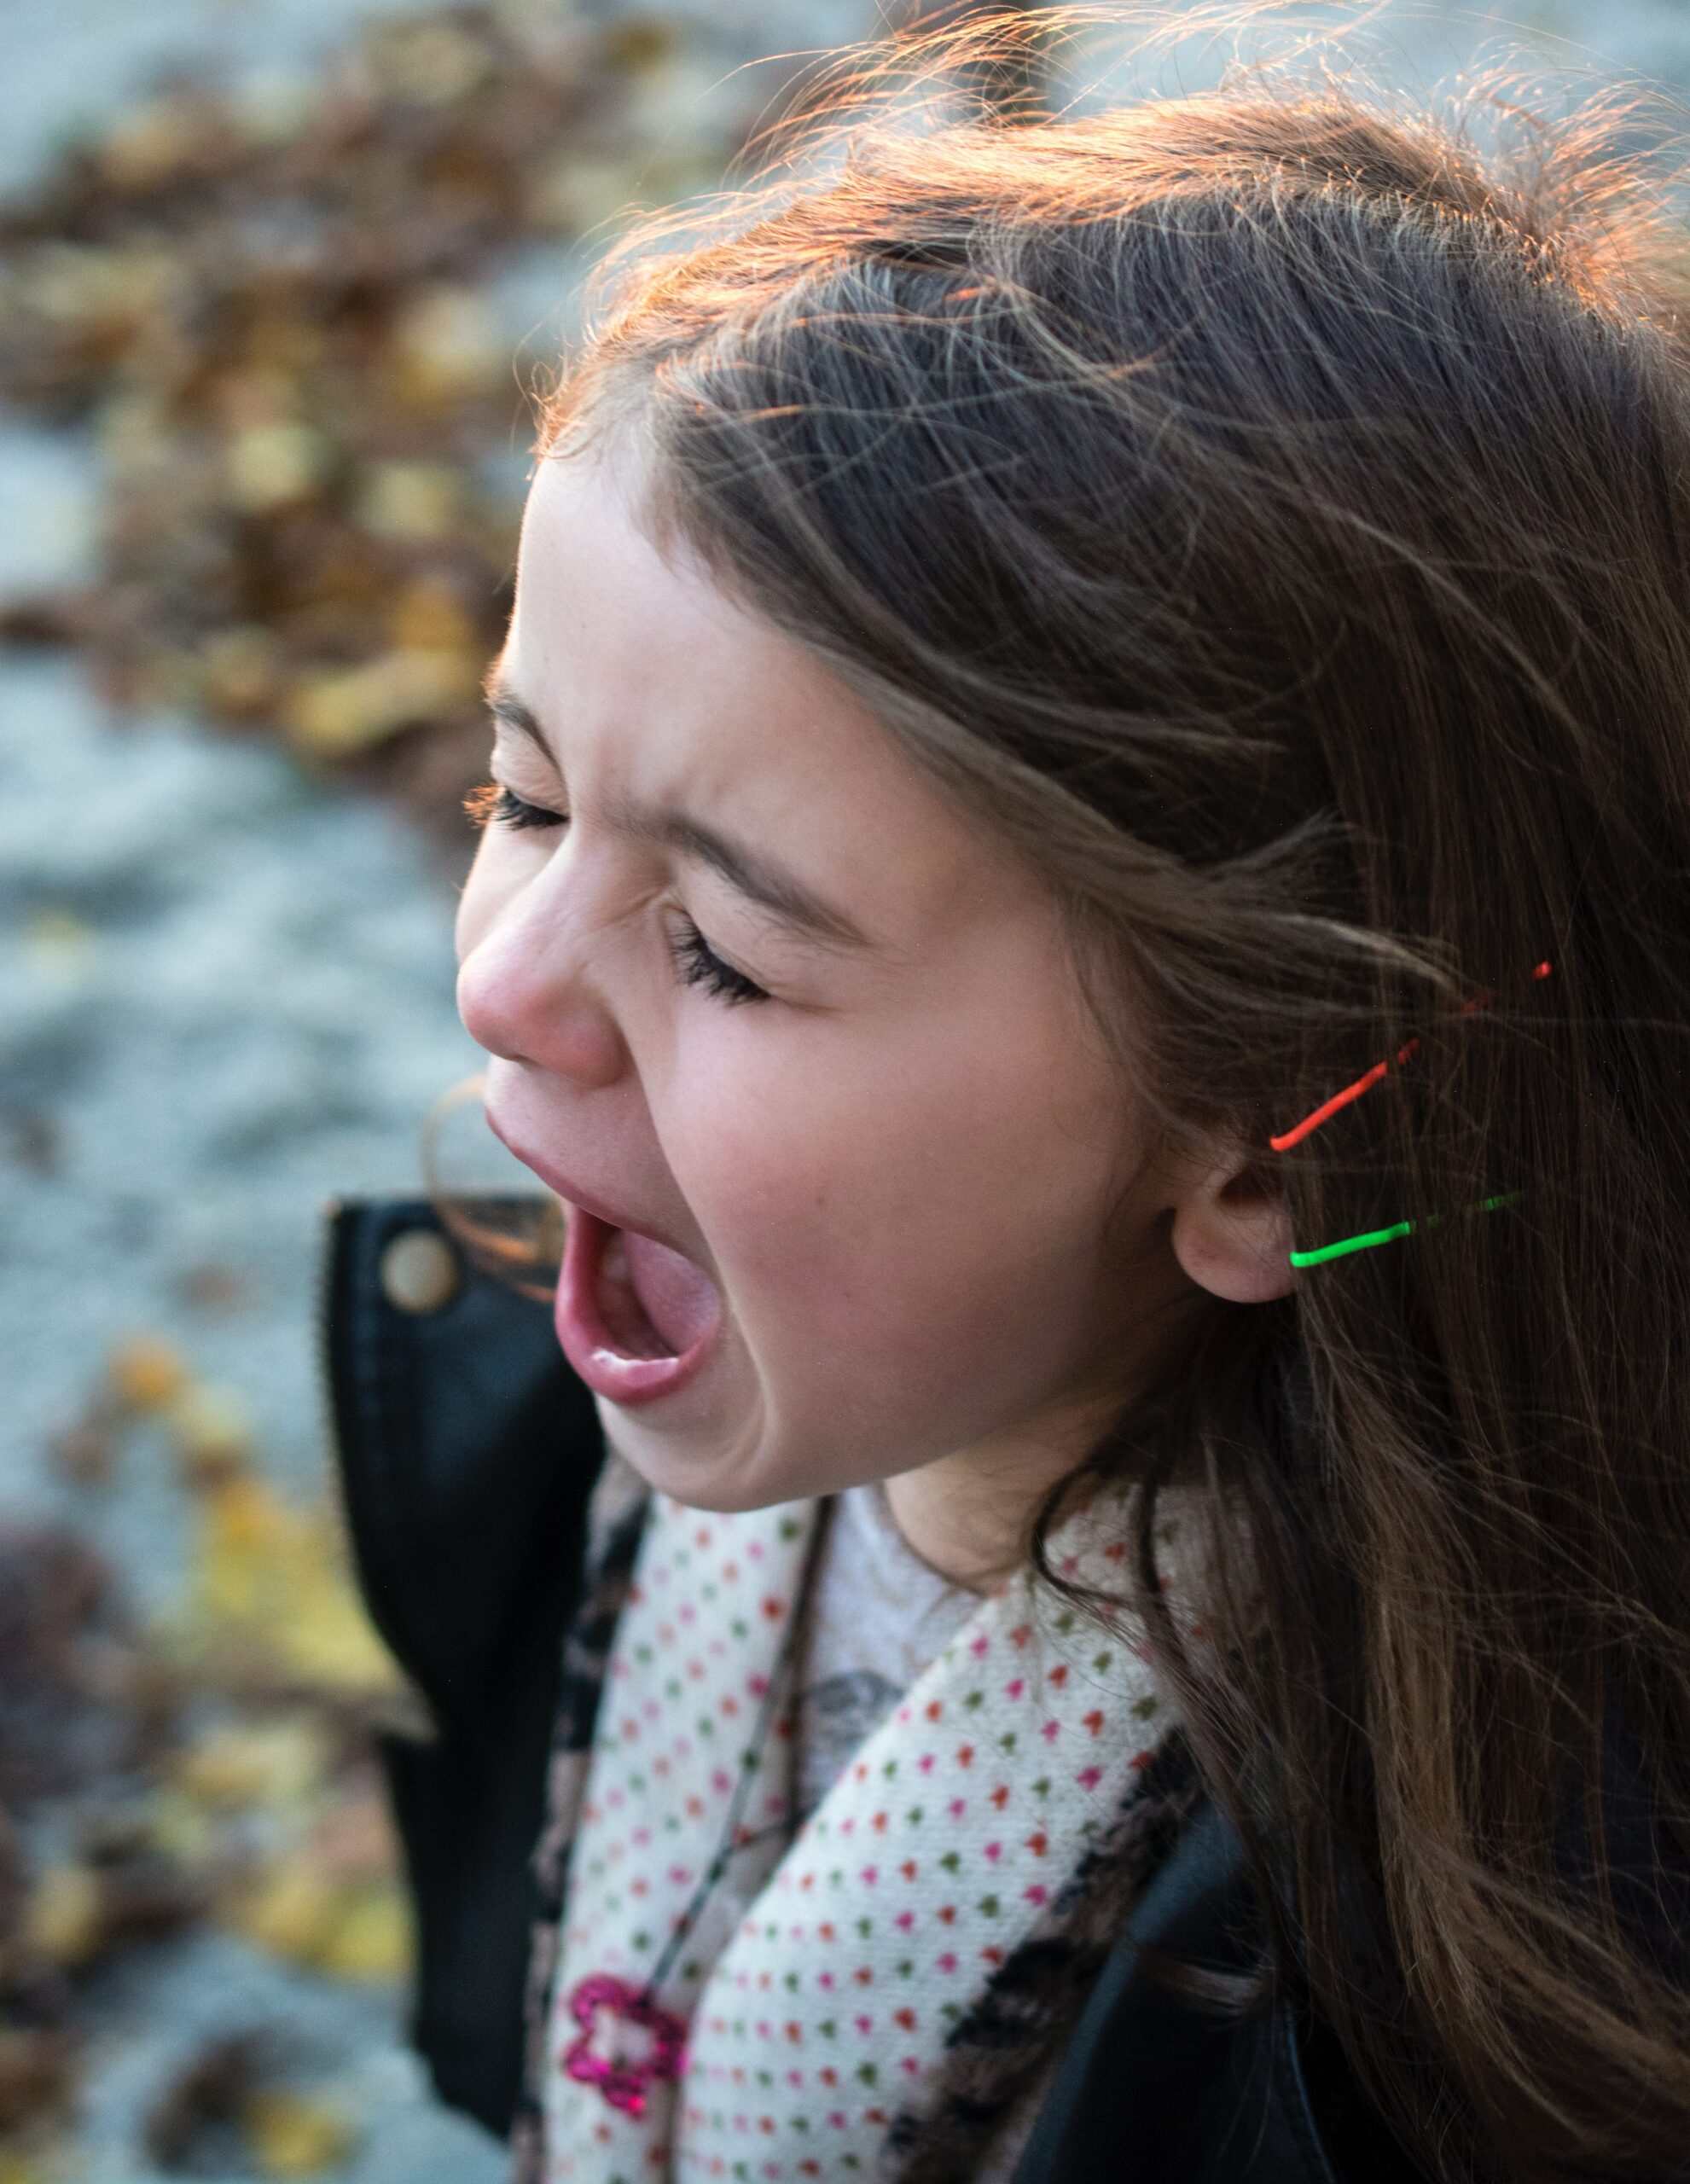 A child screams. We must find out why.